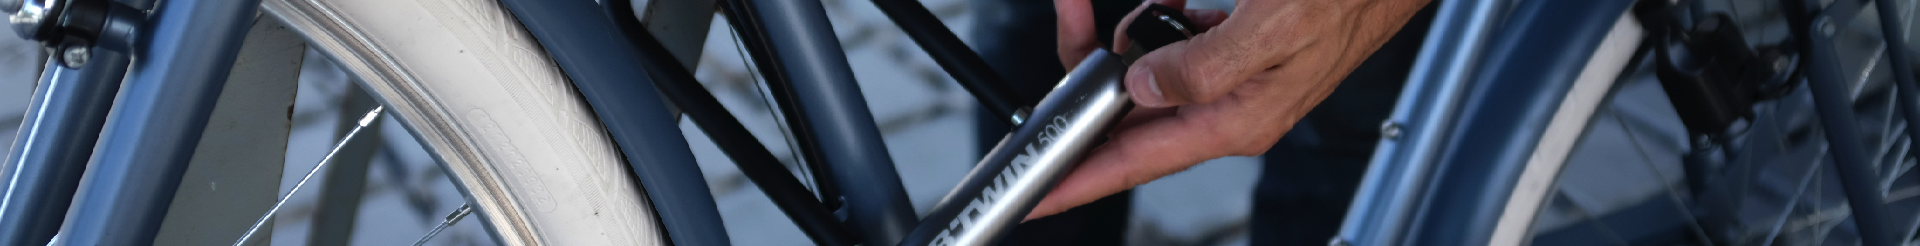 Cycle Locks